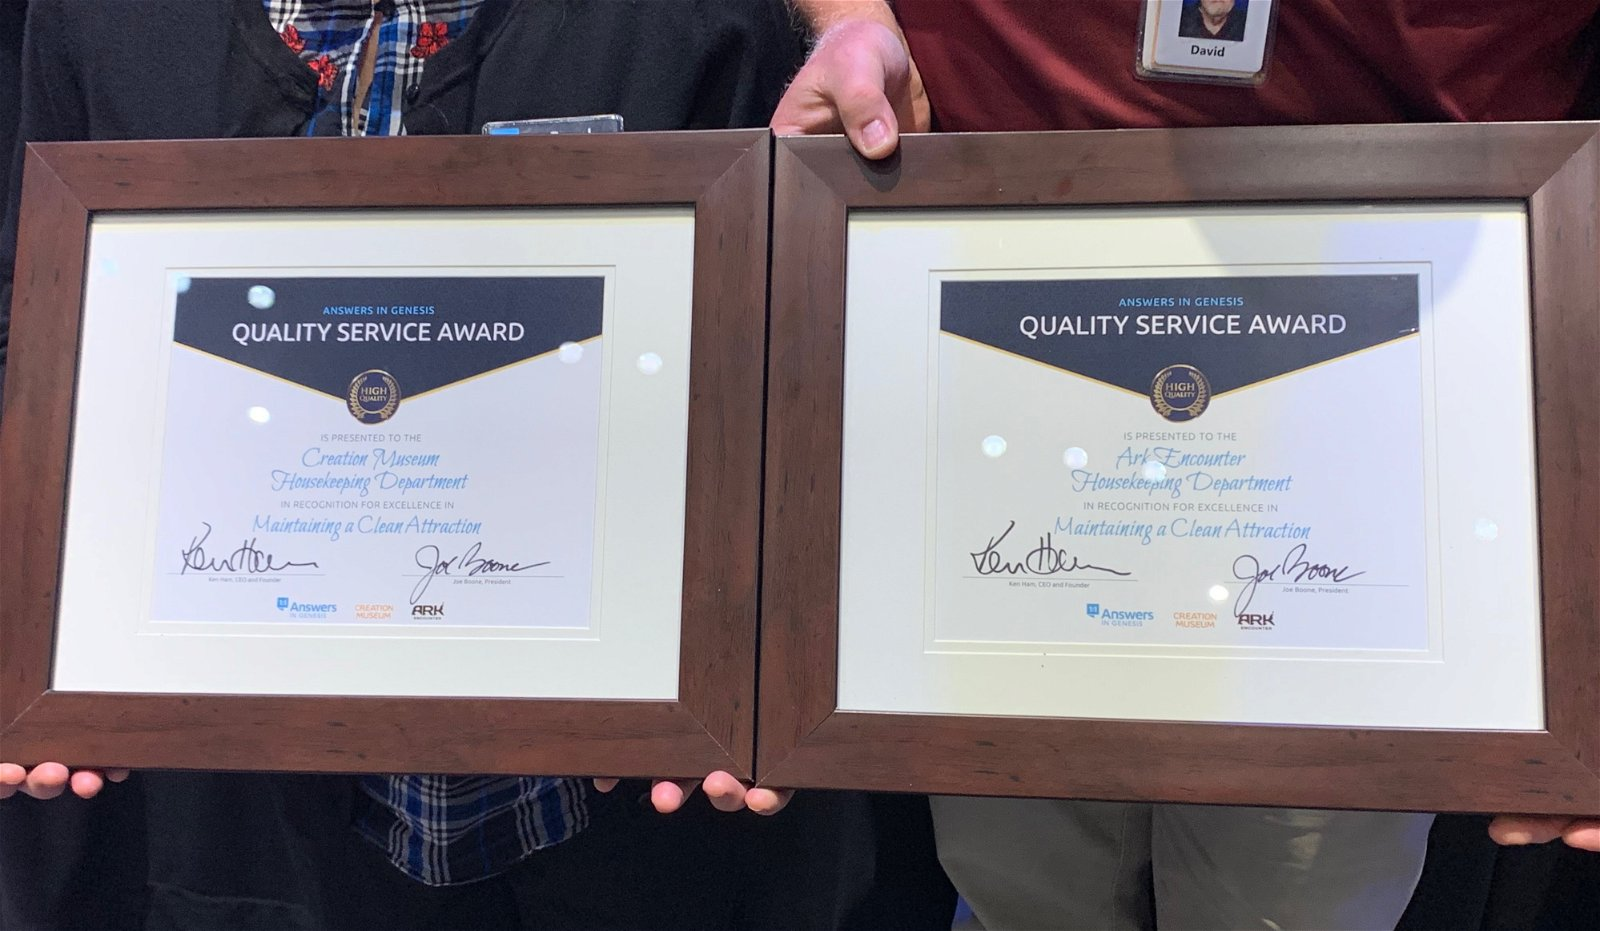 Presenting Quality Service Certificates